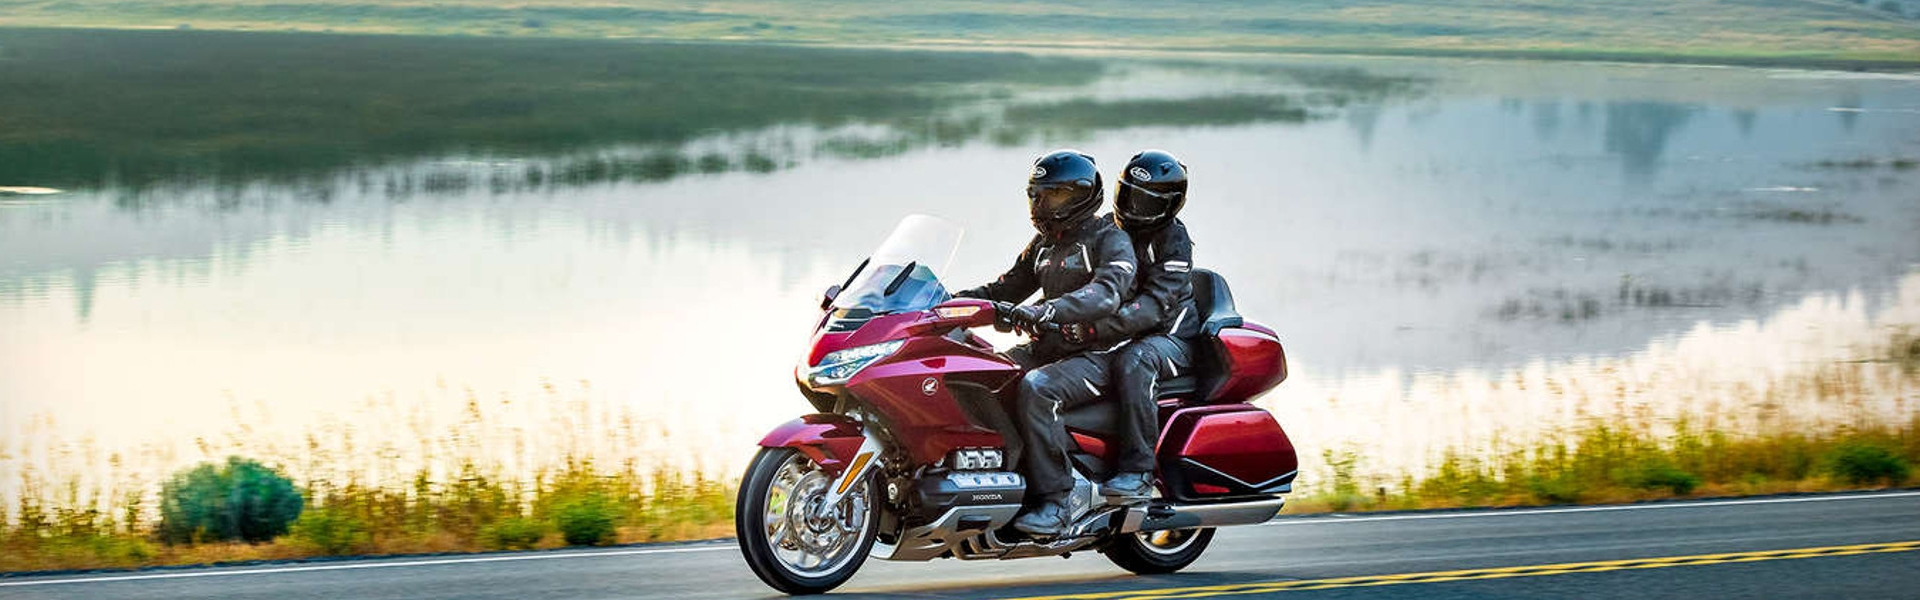 Titelbild-Honda-GoldWing